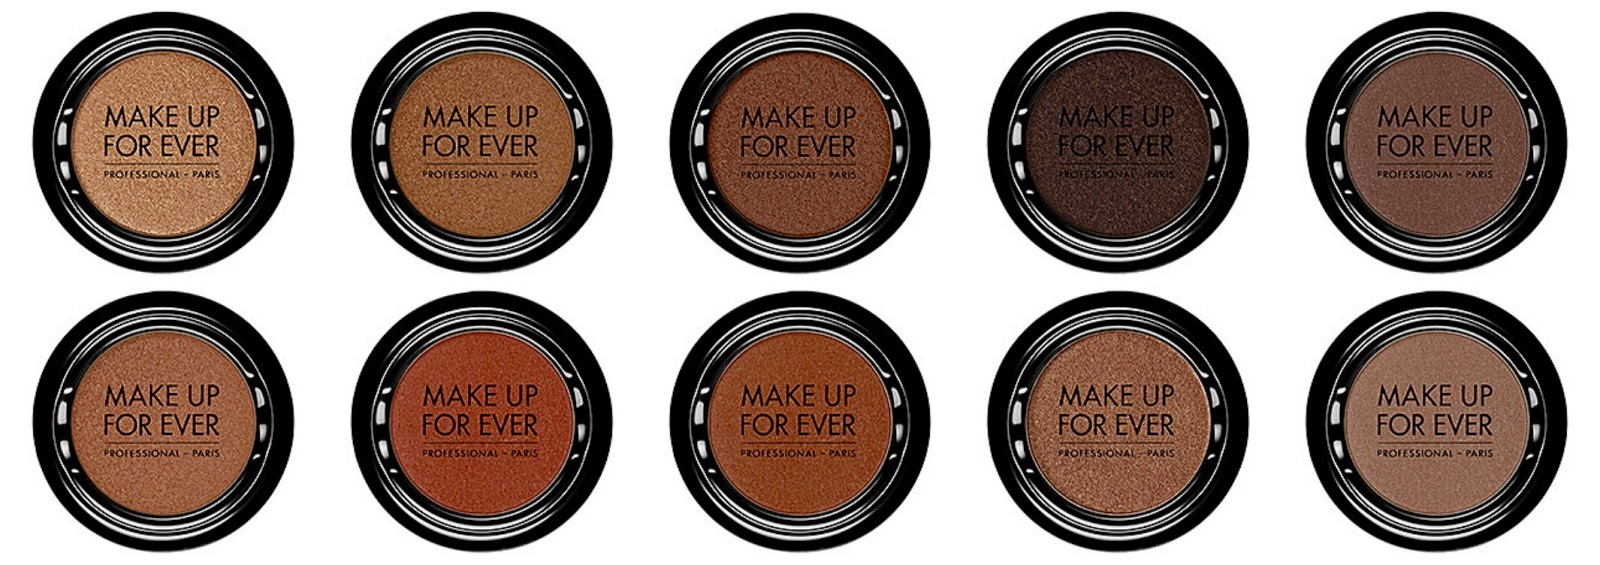 Make UP For Ever Artist Shadow Top from left:S-642 Sahara; S638 Mocha; S632 Hazelnut; S622 Black Brown; S616 Chocolate Bottom from left: S610 Almond; S604 Teak; S602 Cinnamon; S560 Taupe; S556 Taupe Gray